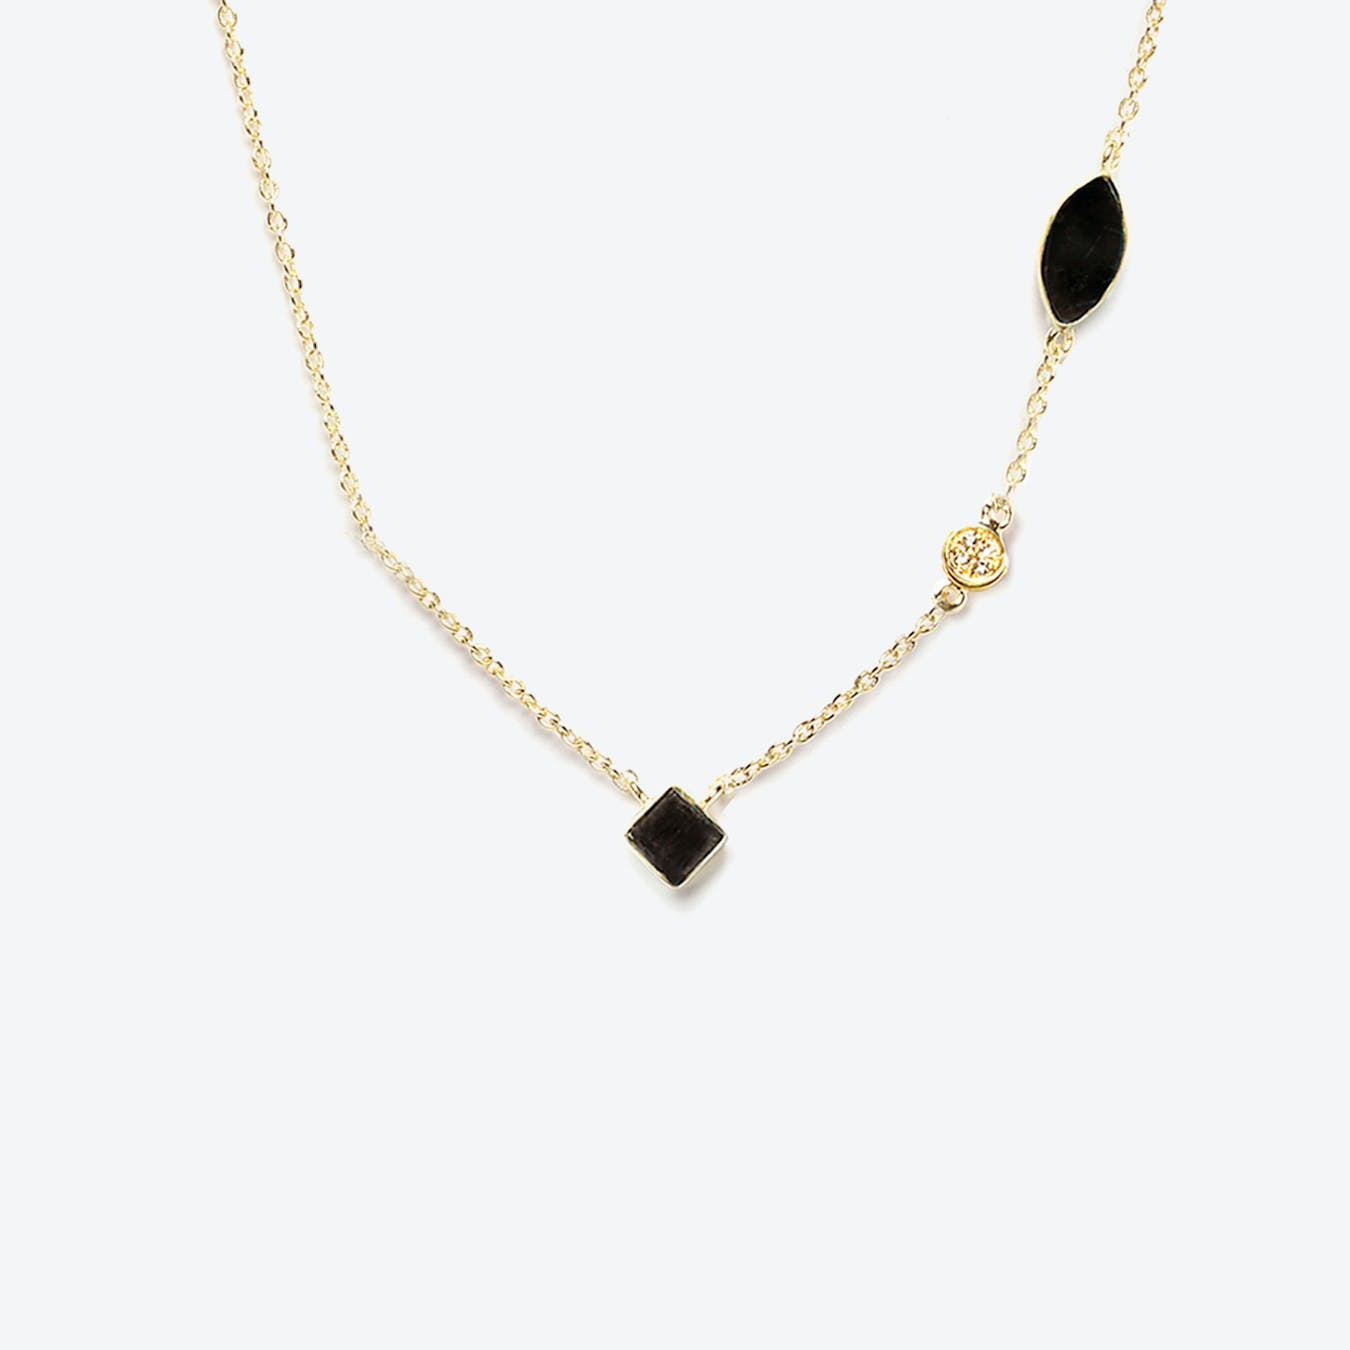 Shayan Necklace - Textured Onyx